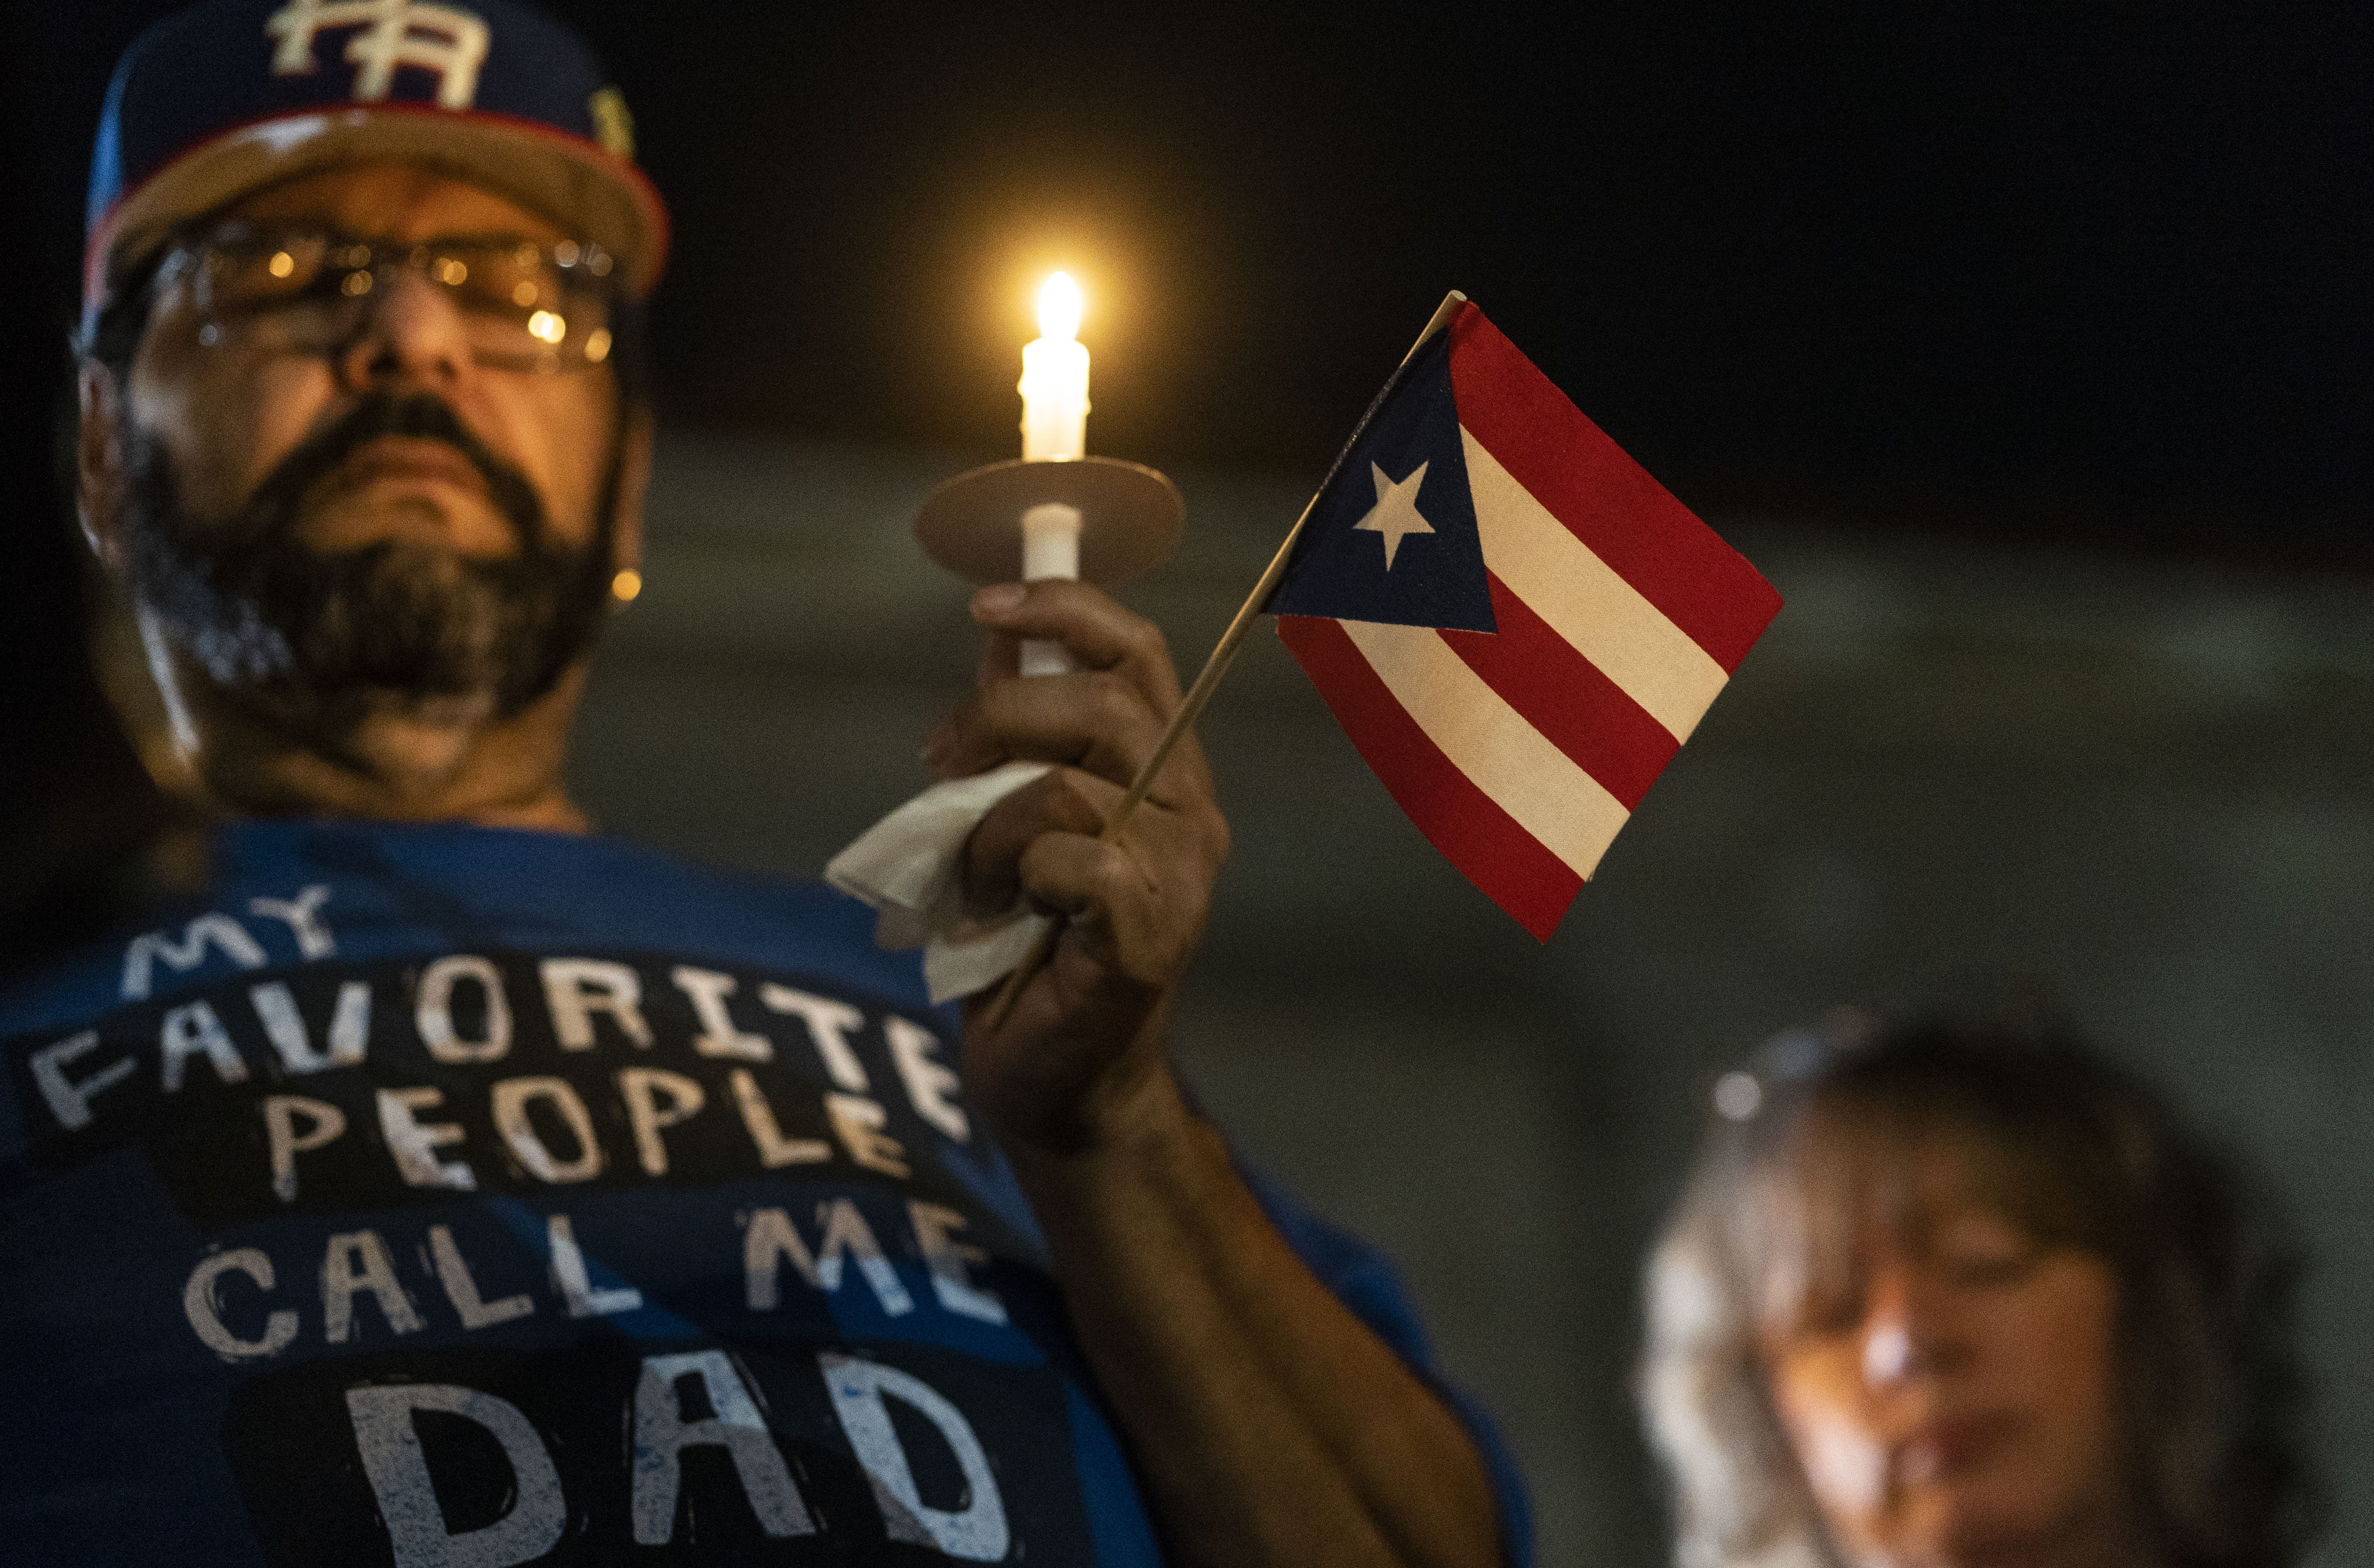 A year after Hurricane Maria, Puerto Ricans in Phoenix say 'healing is still needed' | AZ Central